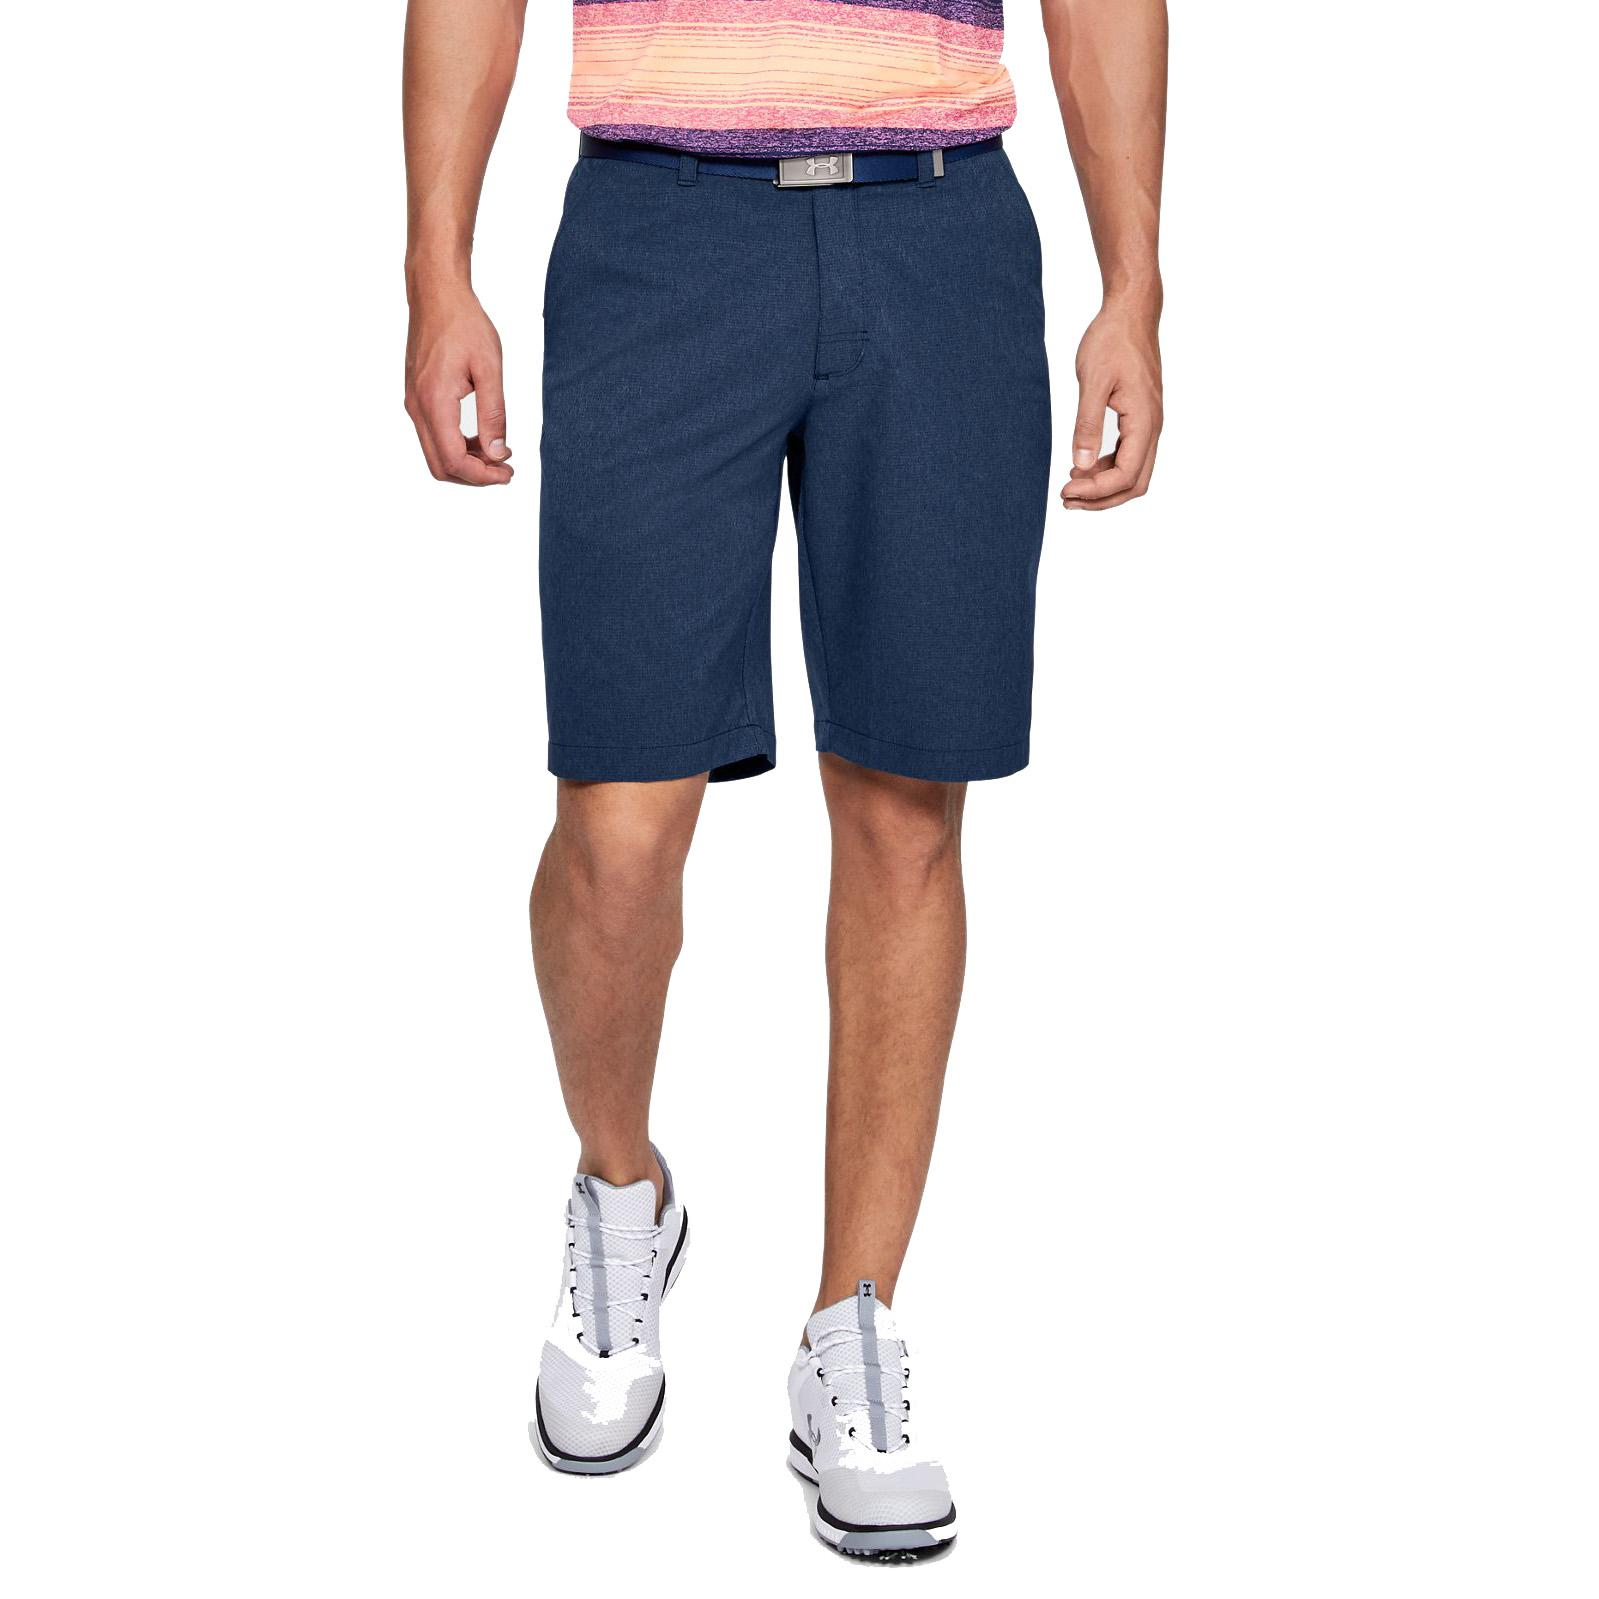 Under Armour Mens Match Play Vented Golf Shorts